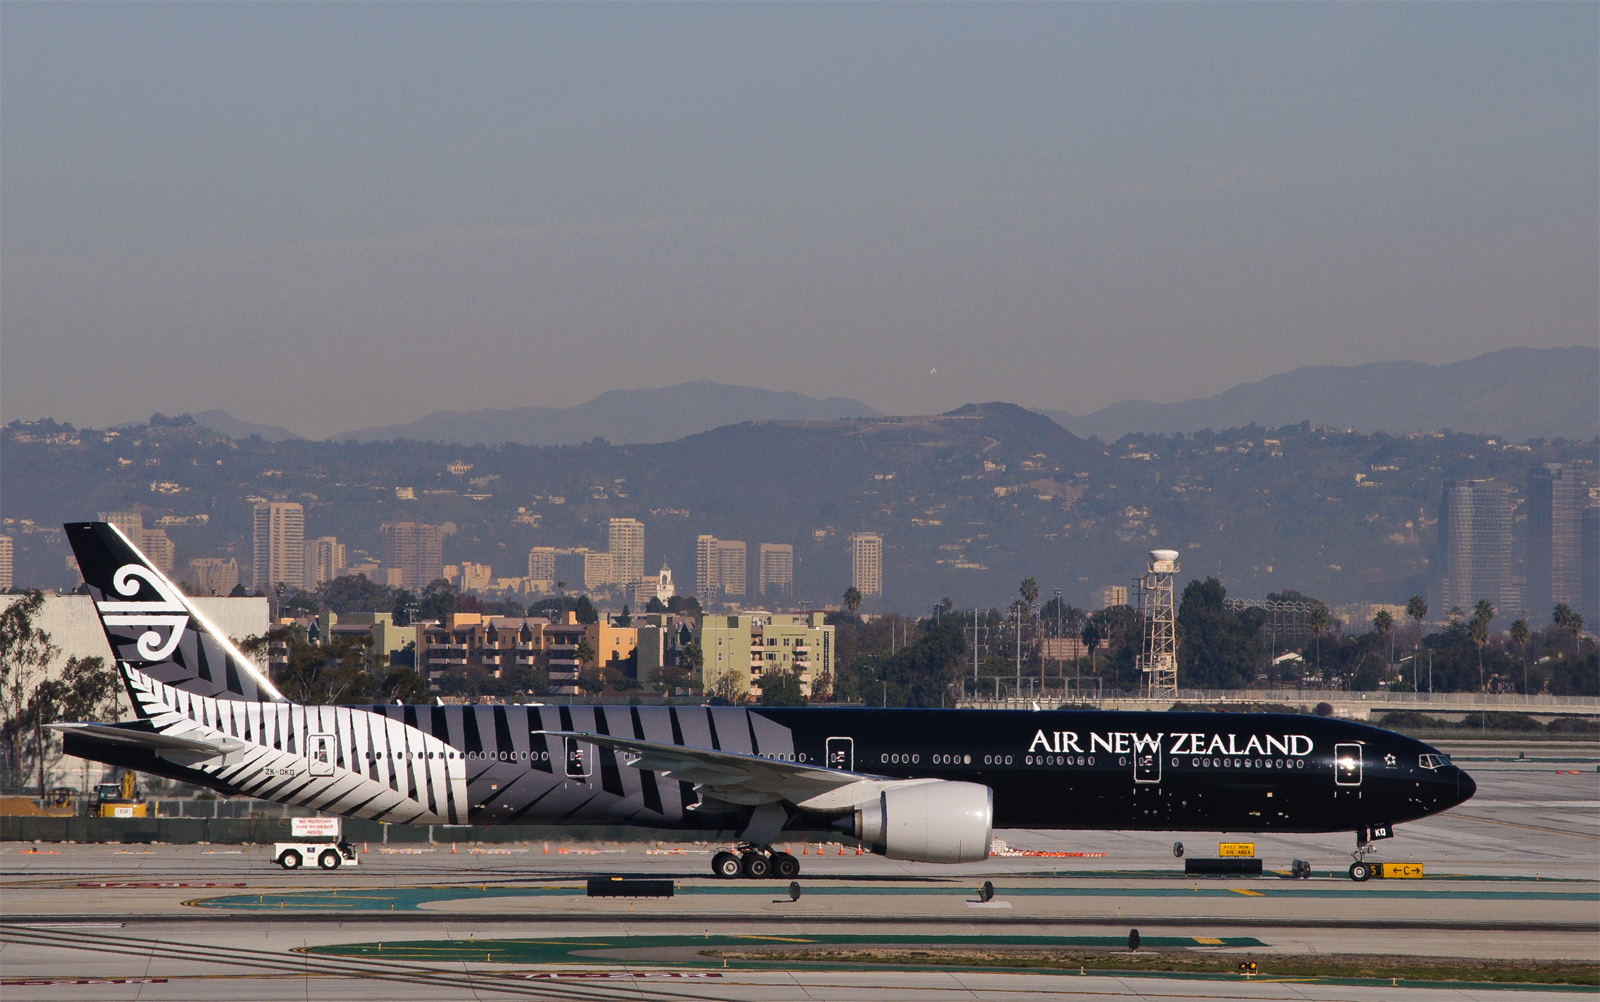 New Zealand, all blacks, airline, aviation, plane paint, cool airplane paint jobs